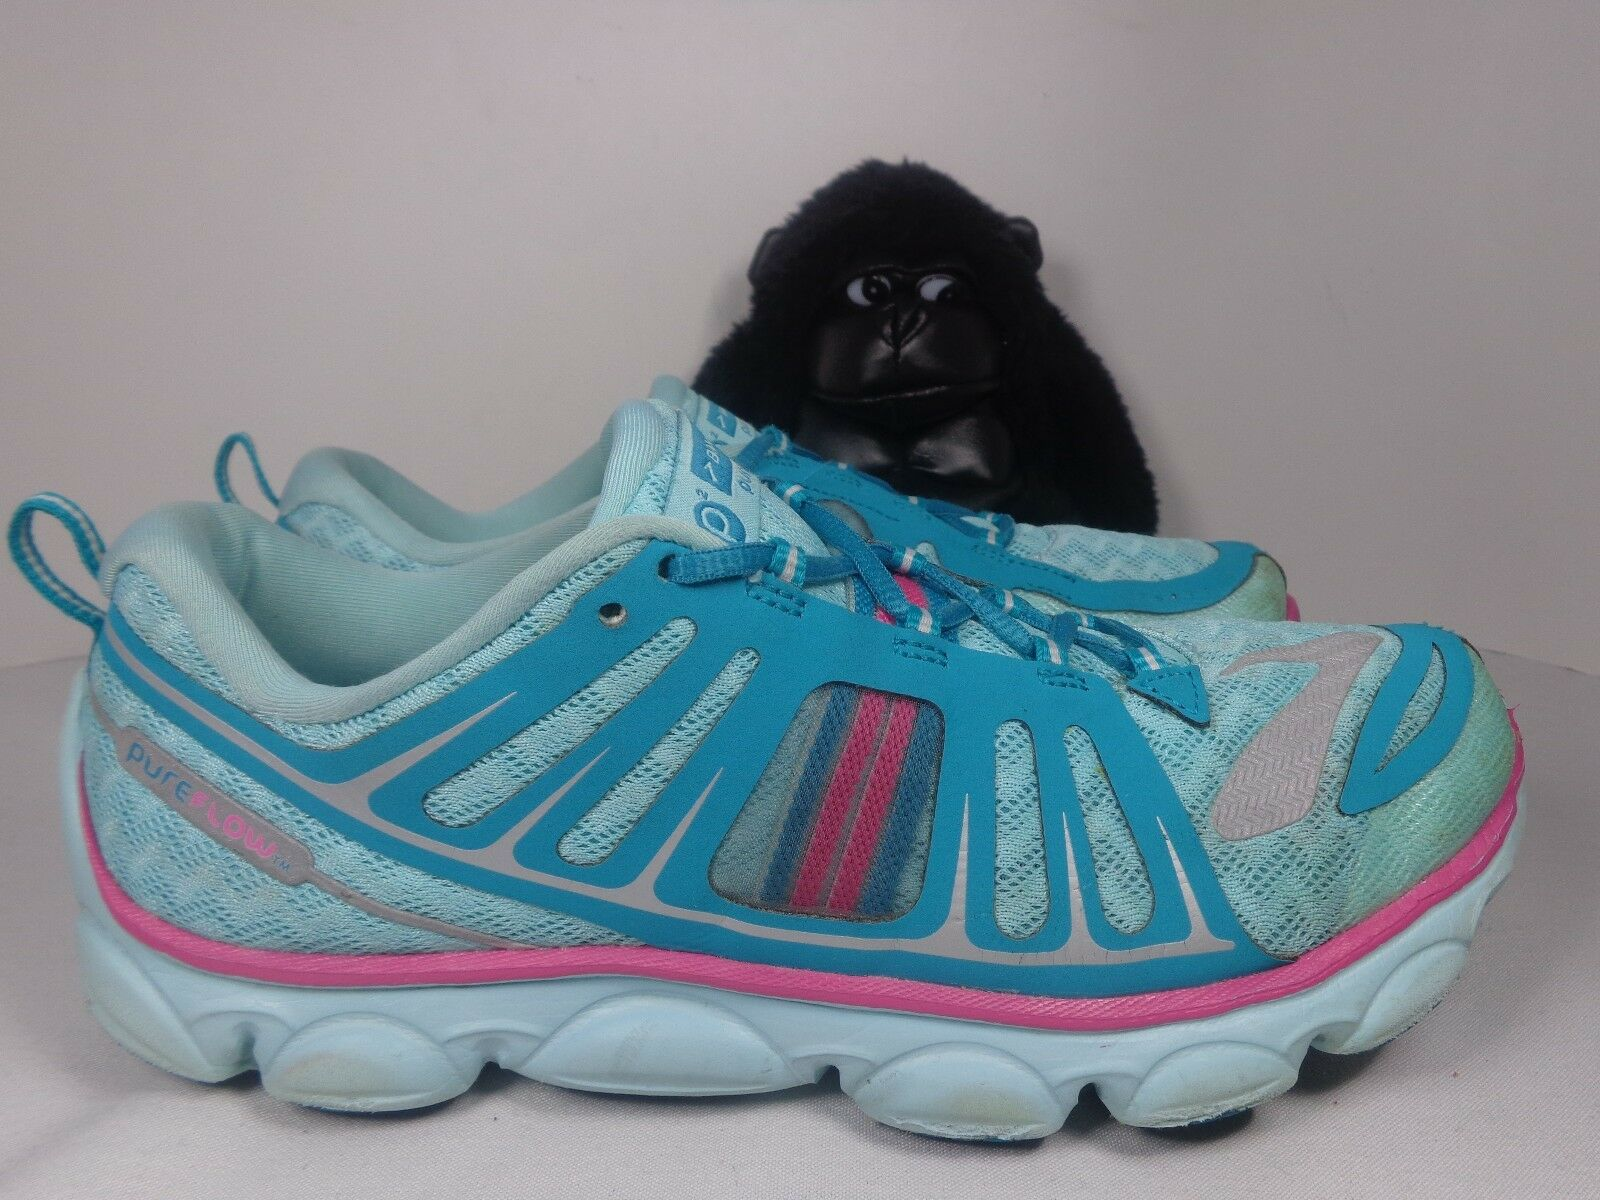 6384c55e210 Mens Brooks Pure Flow 2 Running Training shoes shoes shoes size 5.5 US  1400111D364 fbac8a